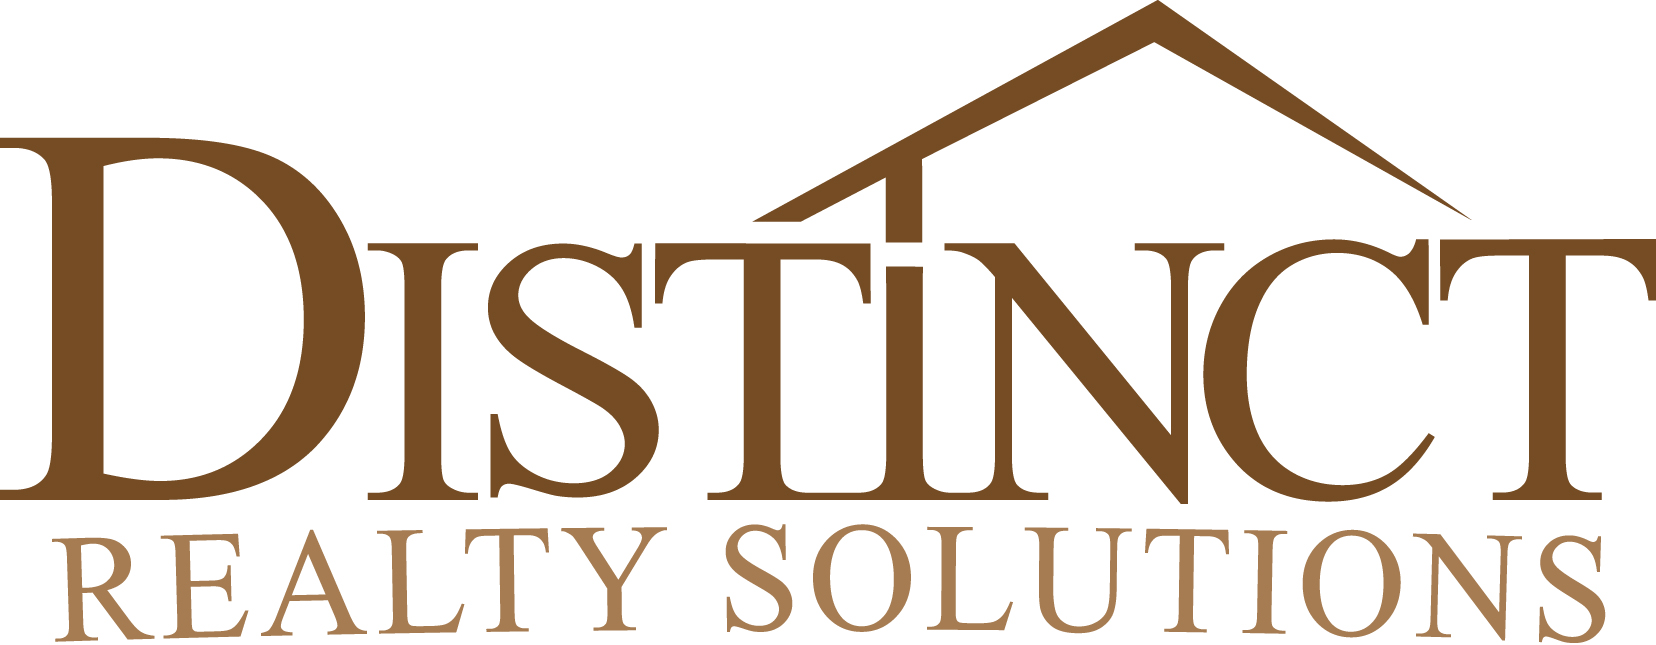 Distinct Realty Solutions, LLC